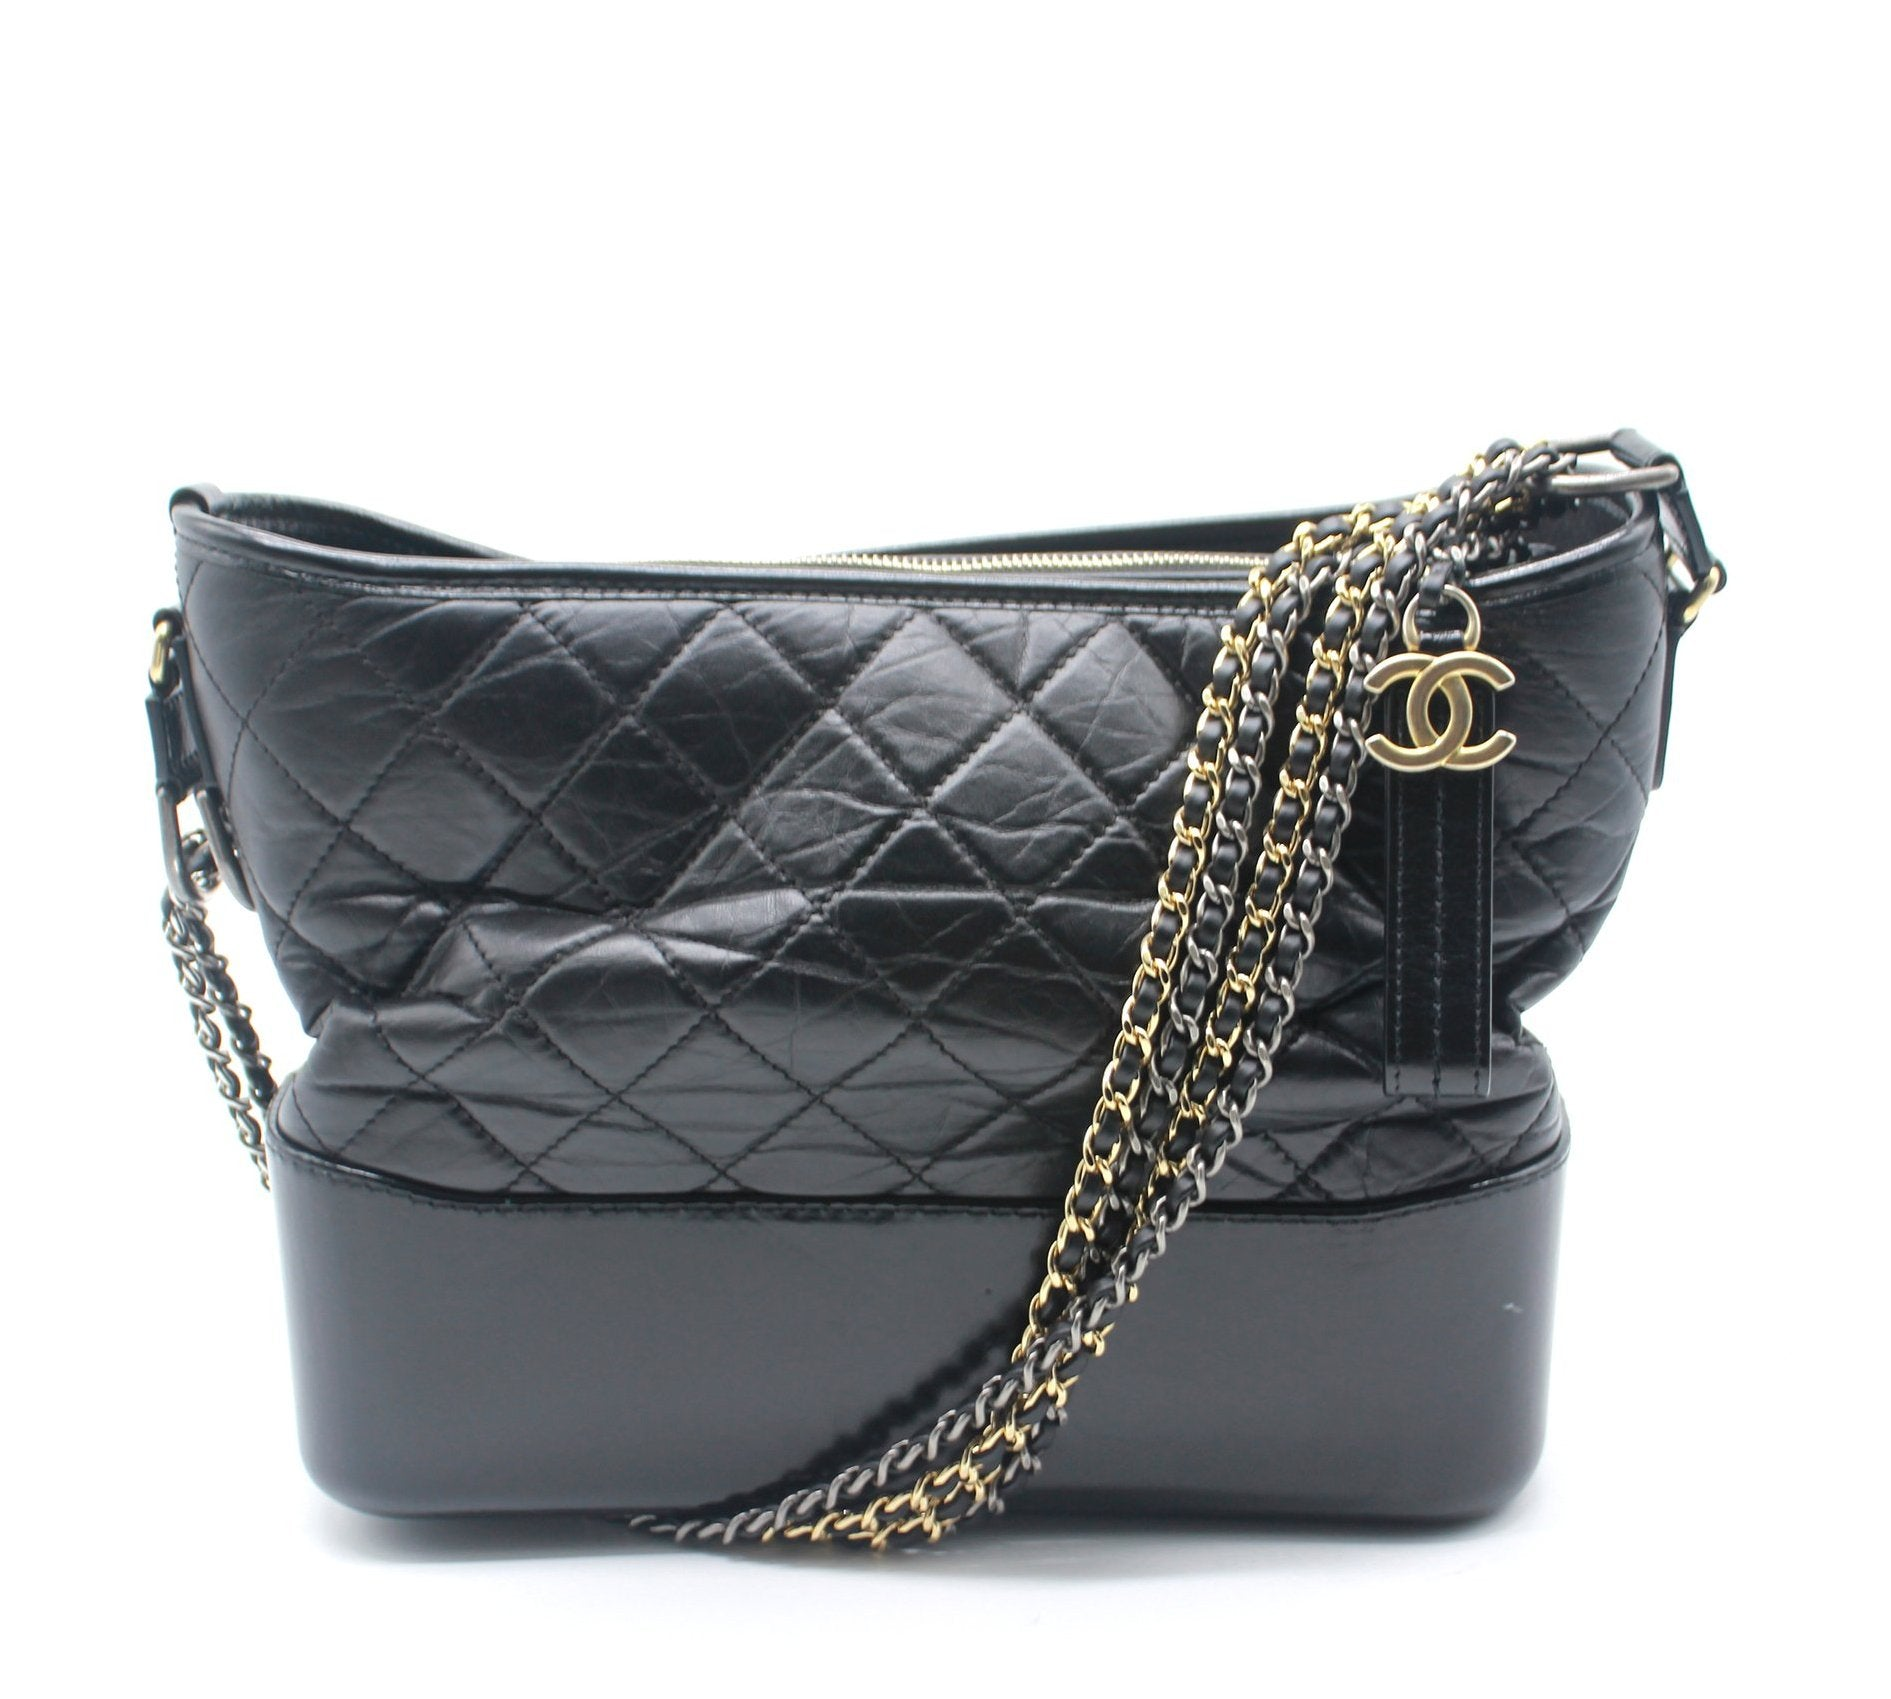 898862185363 Black Quilted Aged Calfskin Leather Gabrielle Hobo Bag – STYLISHTOP